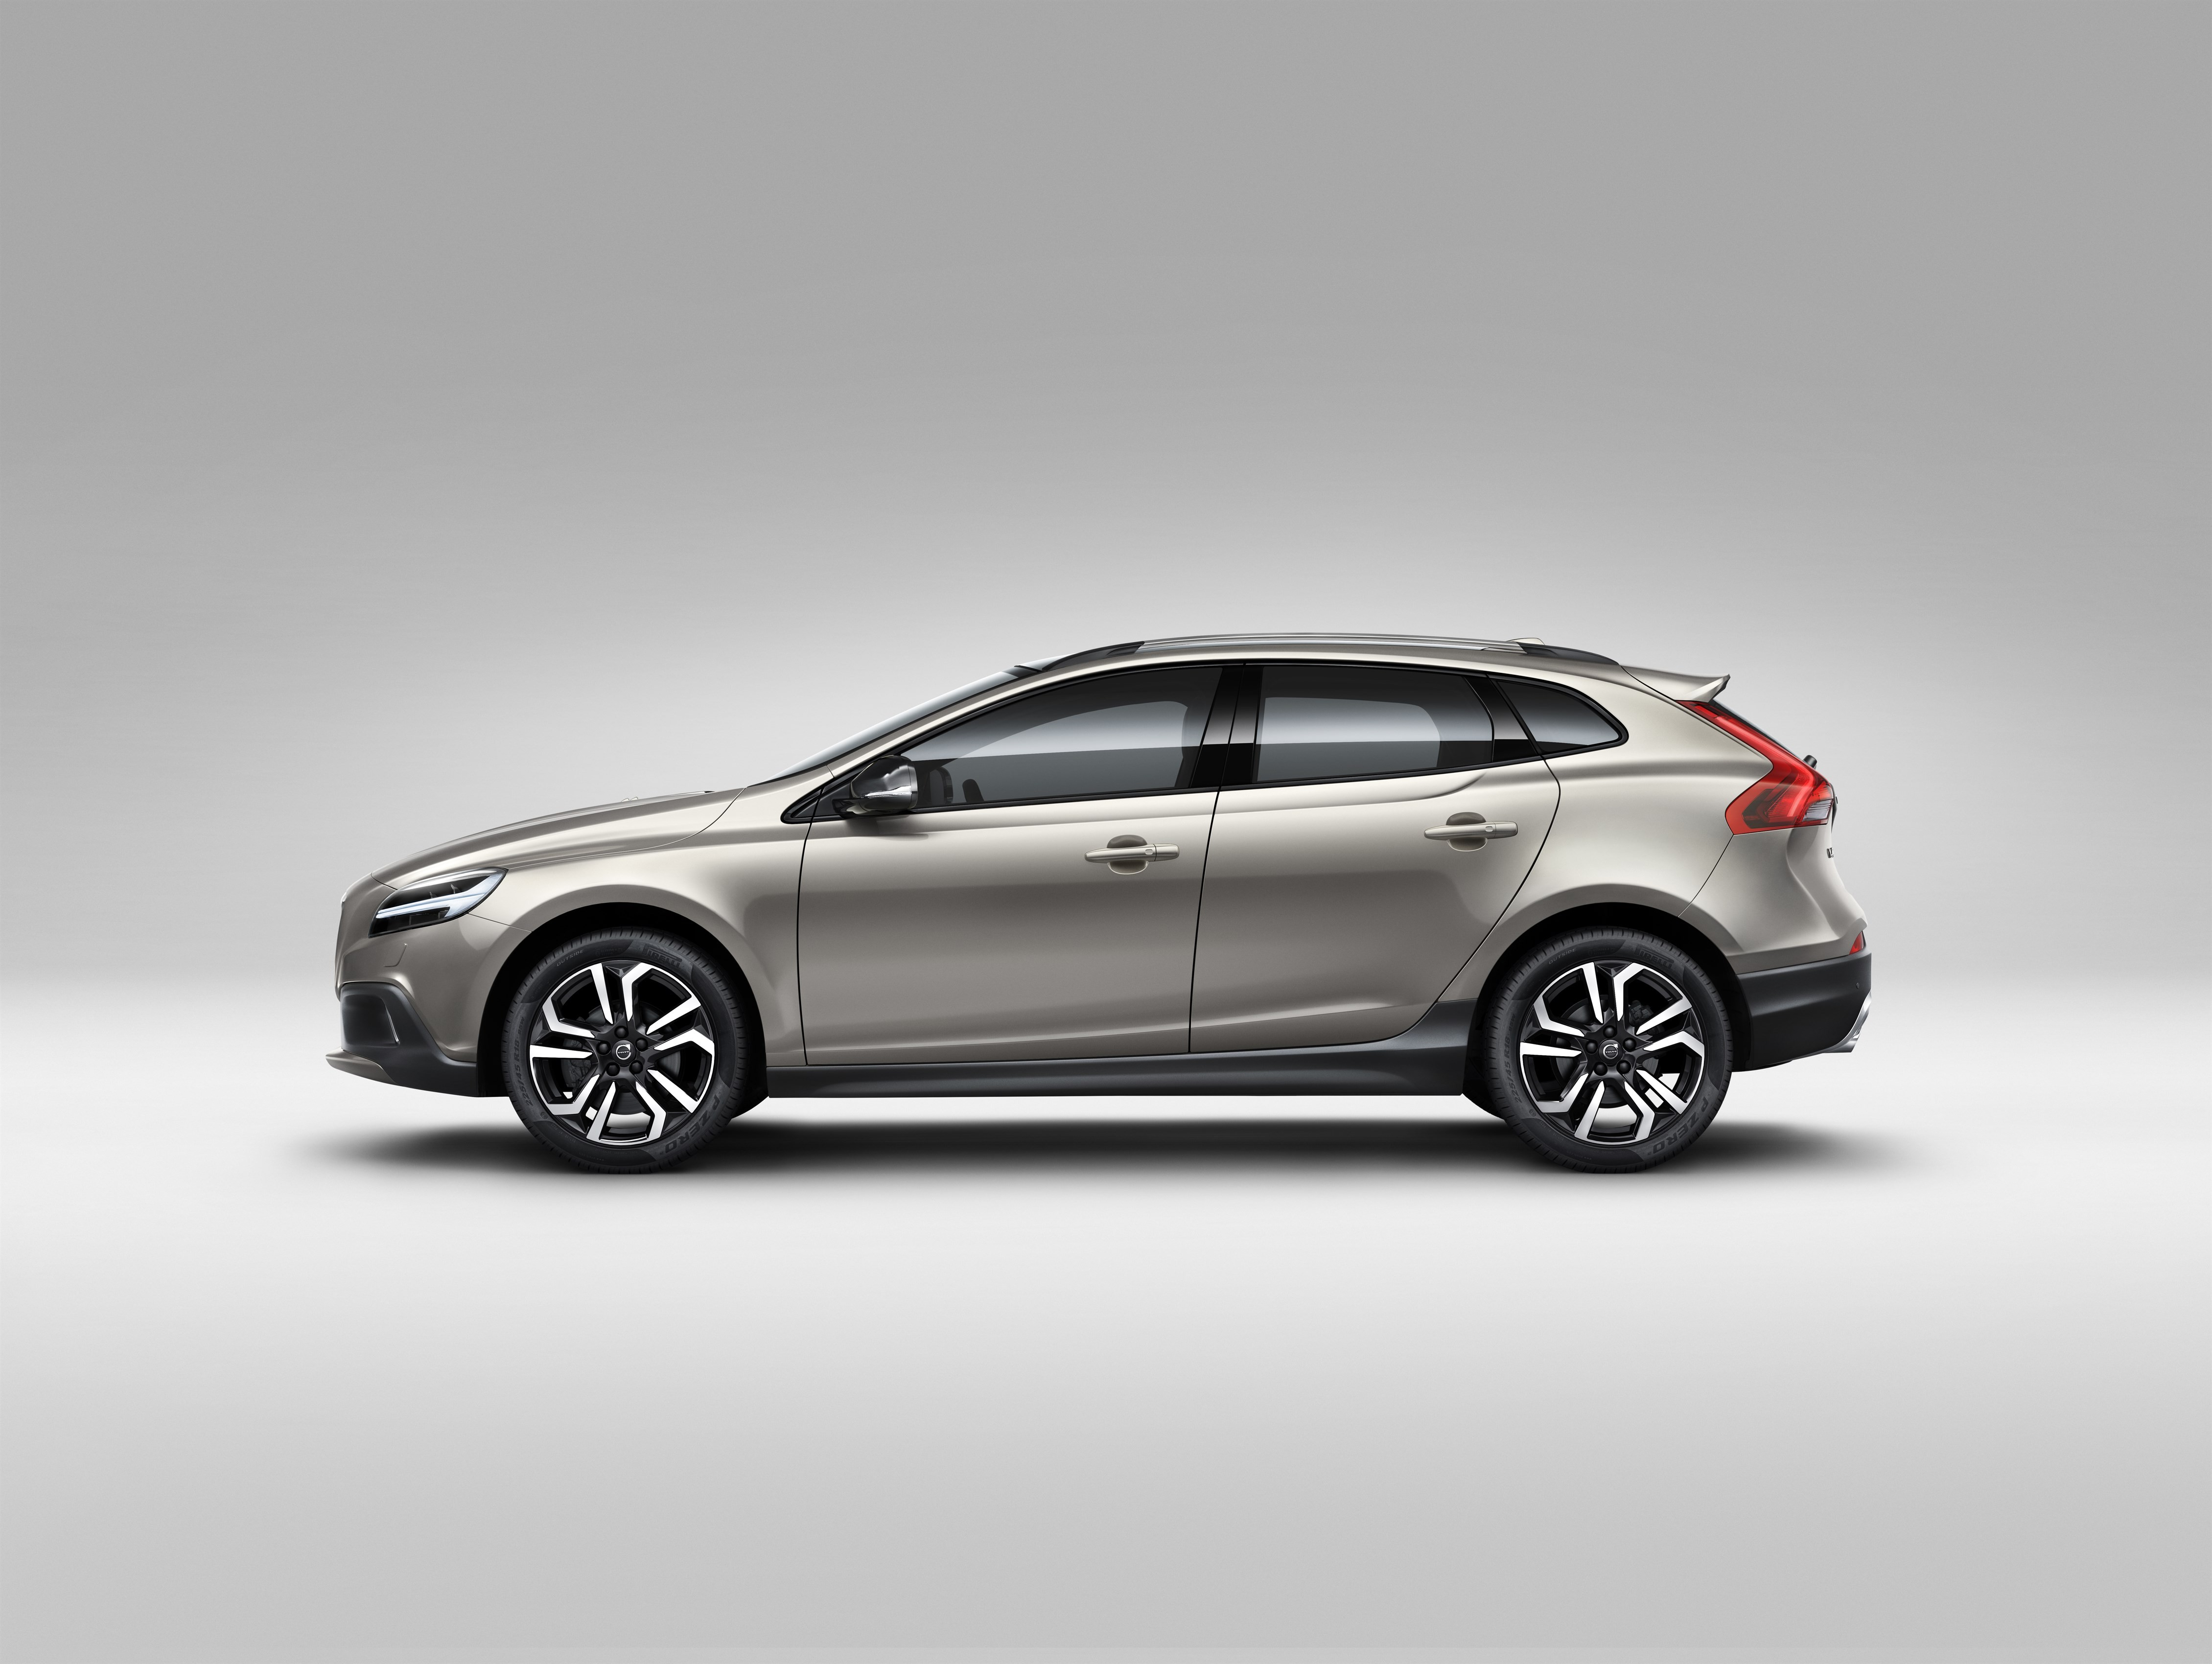 2017 volvo v40 cross country new engines 1 5l t3 and 2 0l. Black Bedroom Furniture Sets. Home Design Ideas